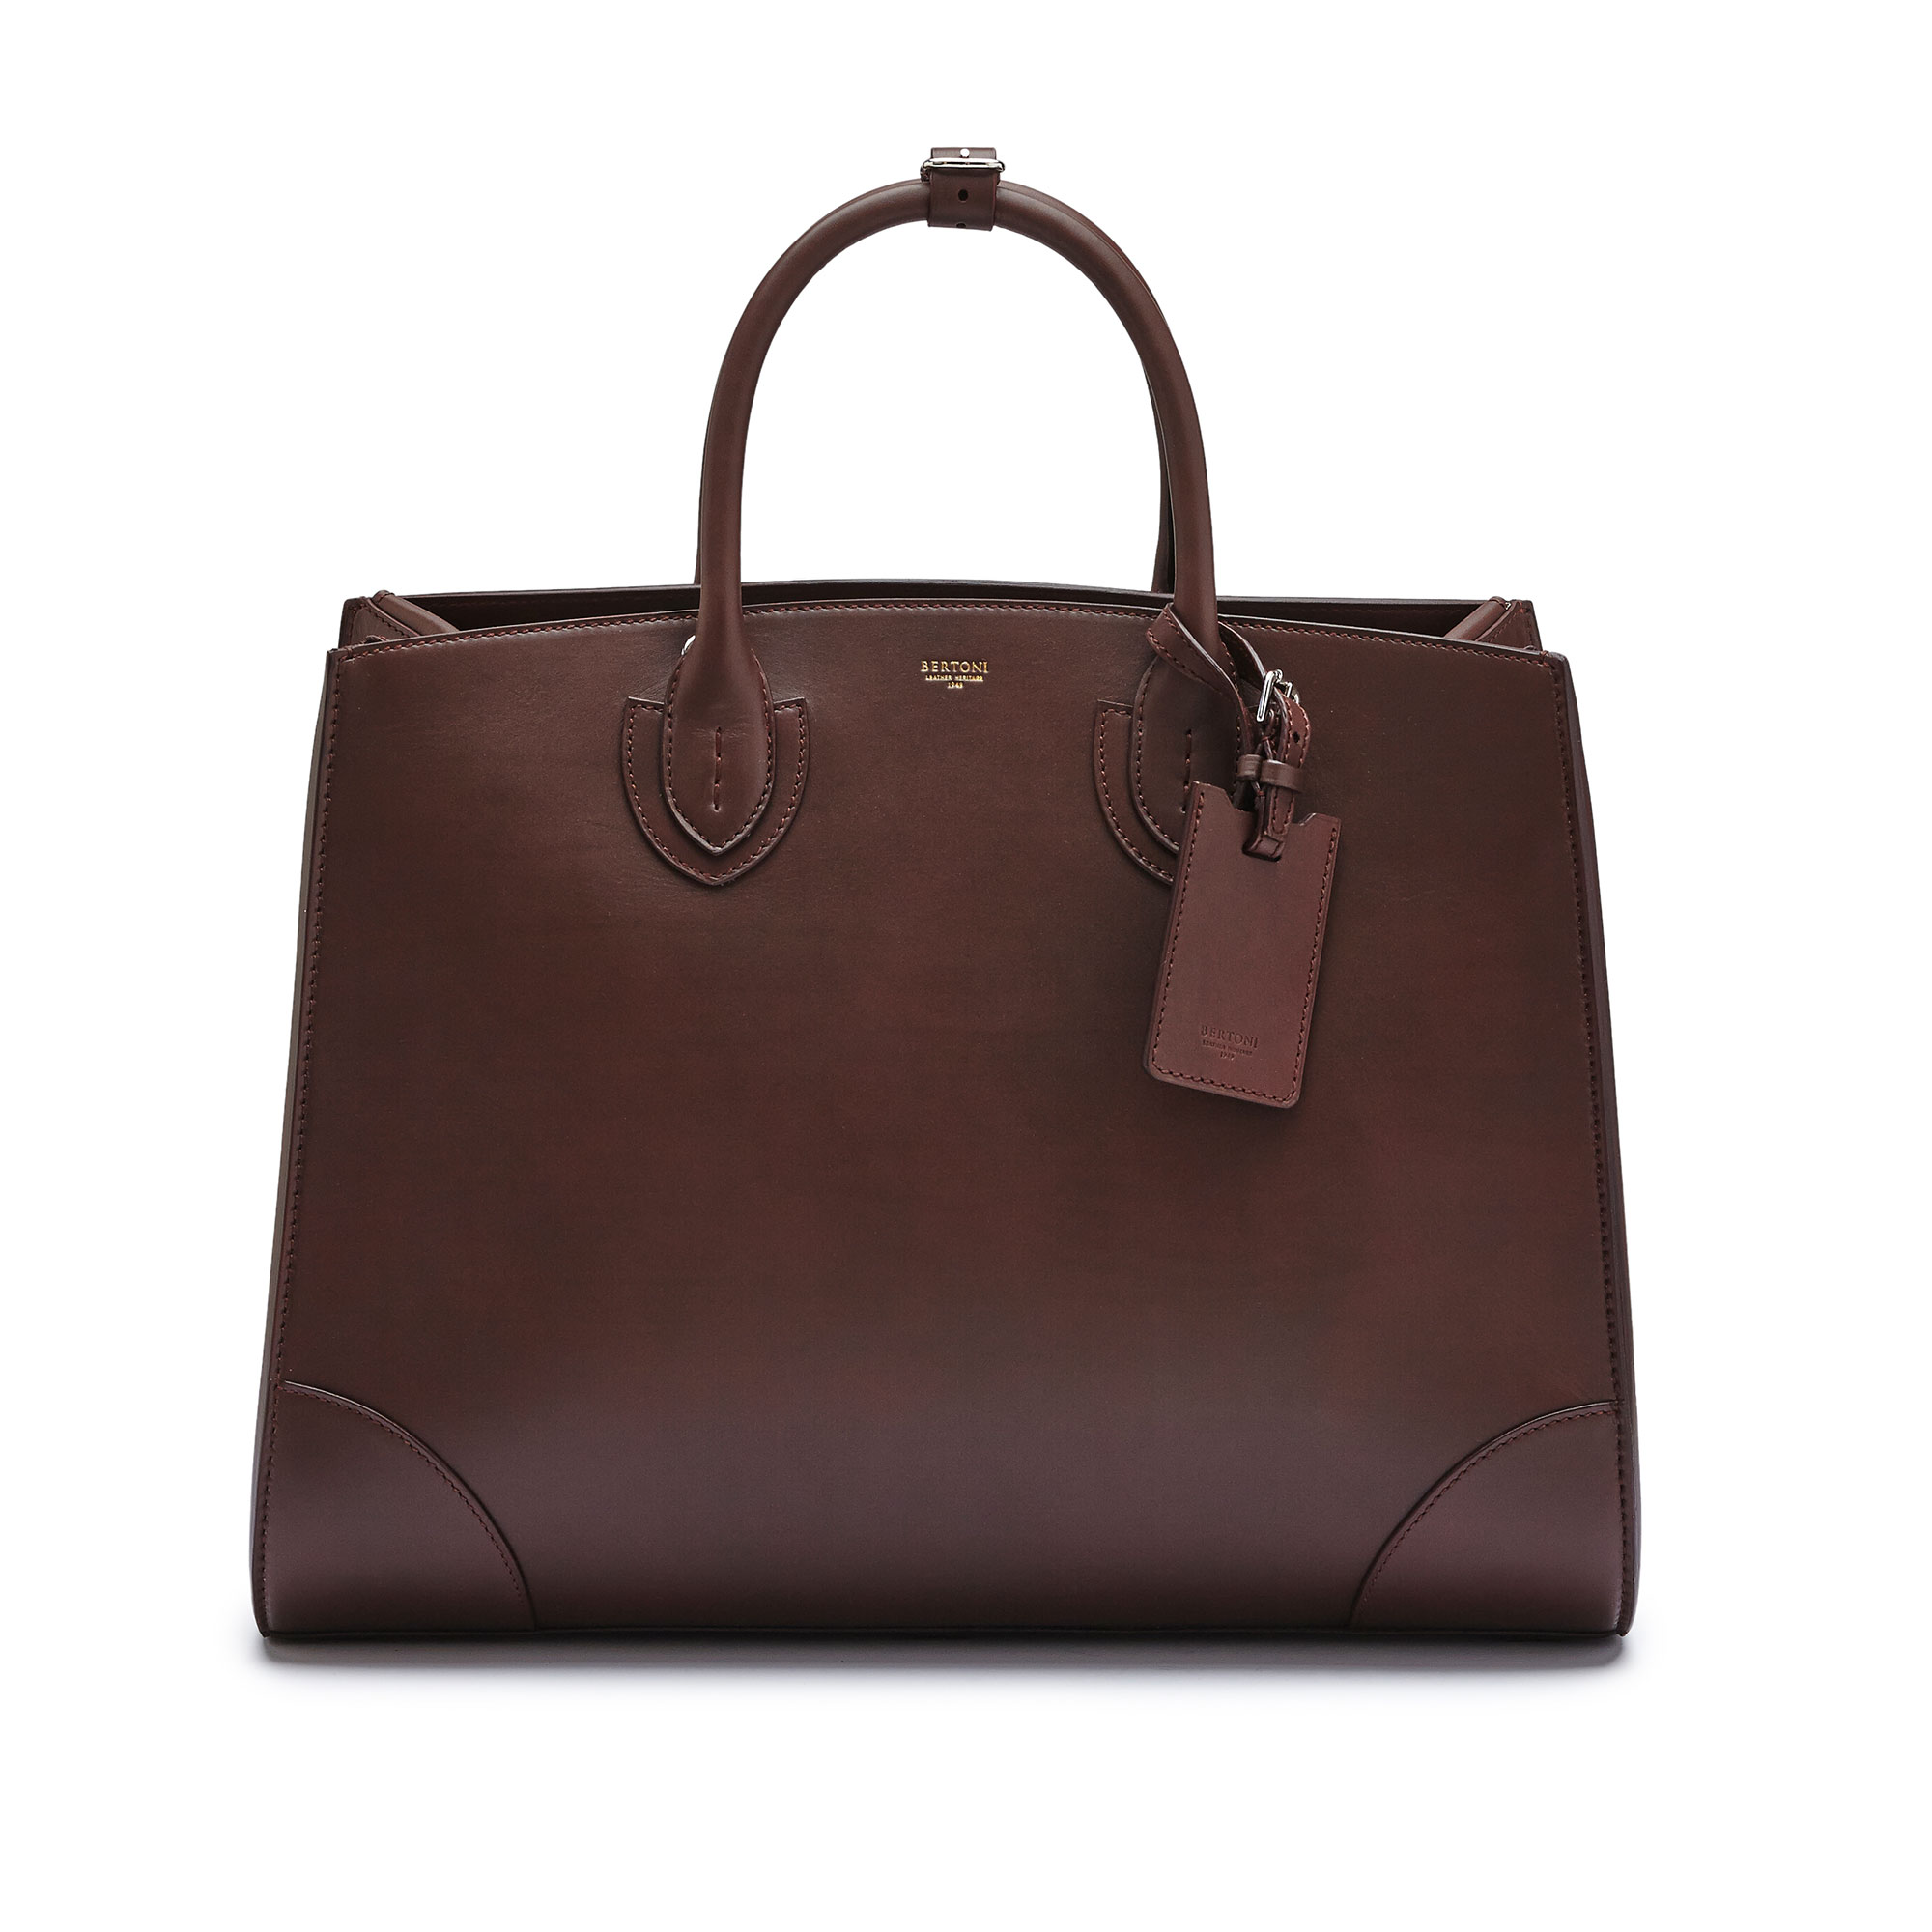 The bordeaux french calf Maxi Darcy bag by Bertoni 1949 02